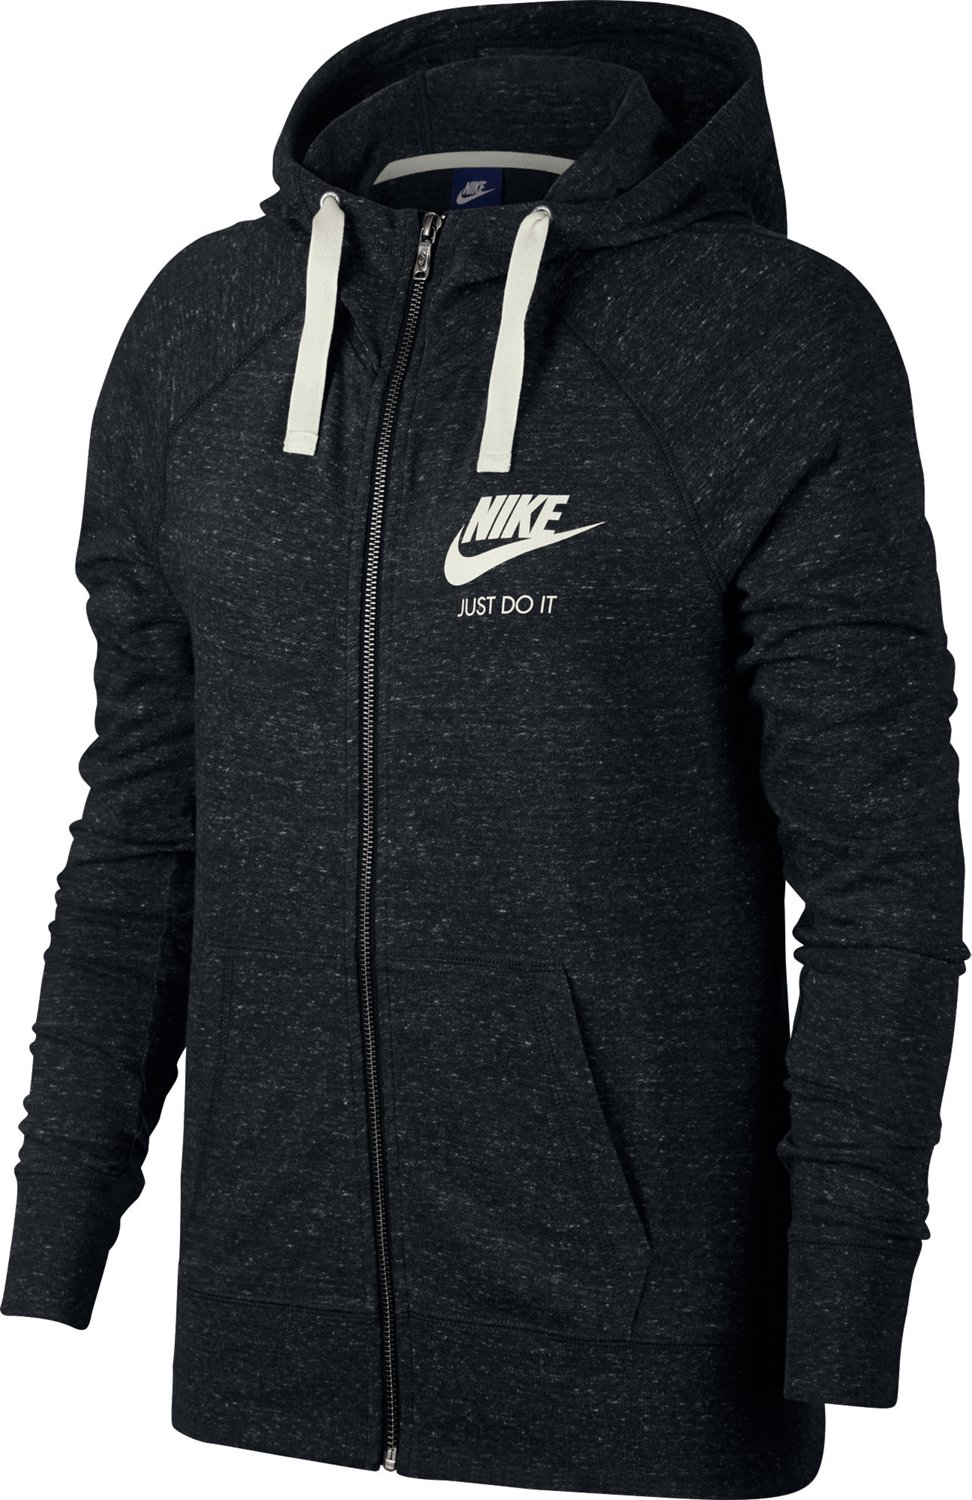 1f6934ec67e9b Display product reviews for Nike Women's Gym Vintage Full Zip Hoodie